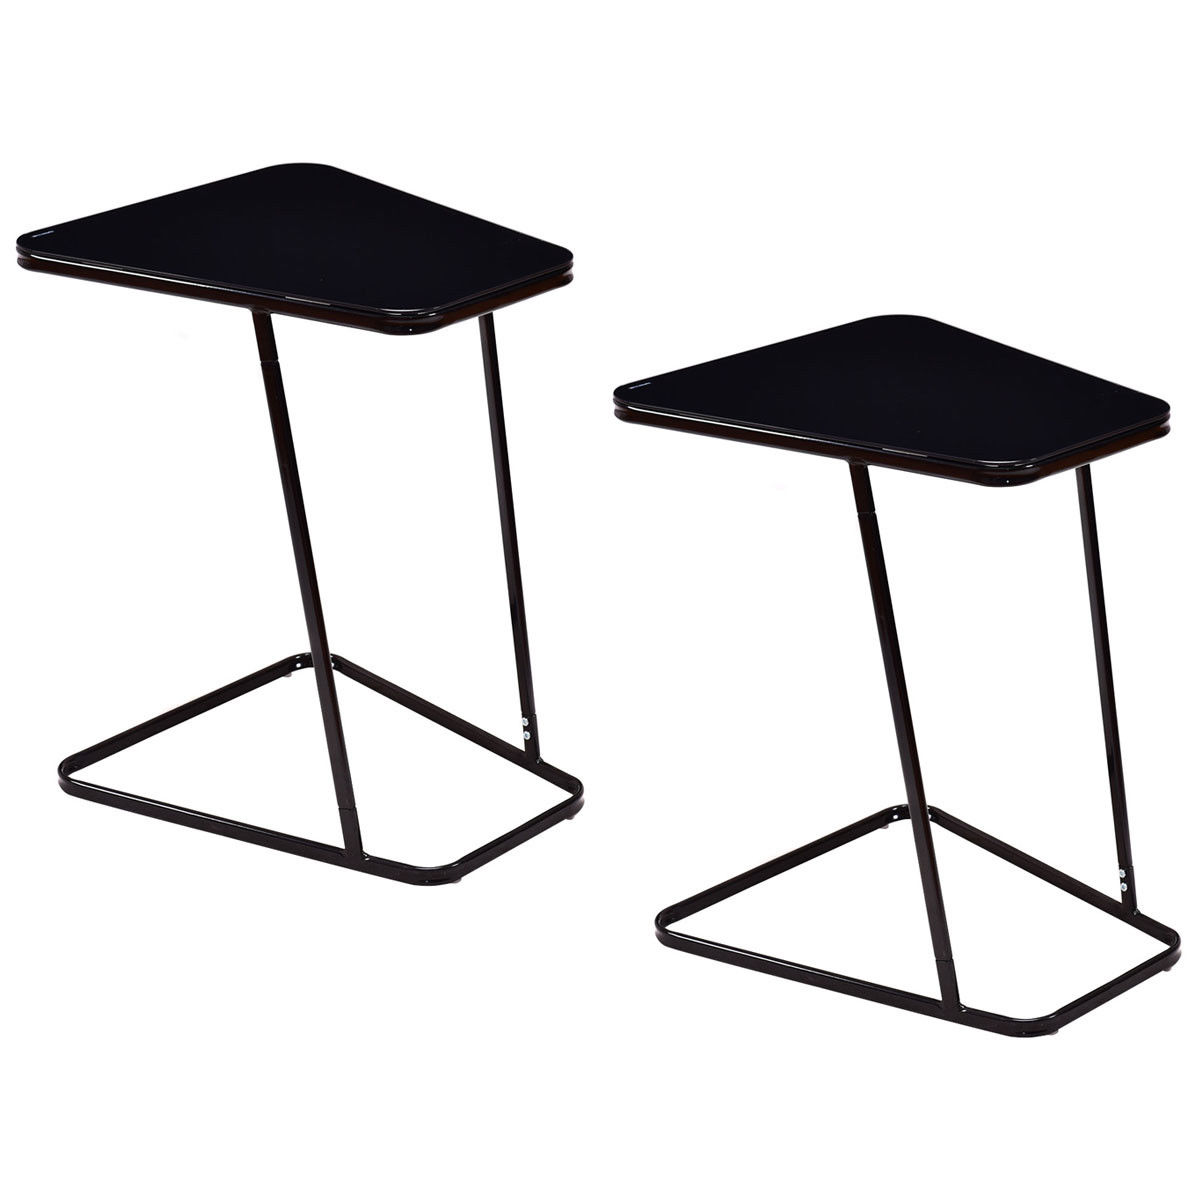 Gymax 2PC Modern C Shape Glass Steel End Table Accent Side